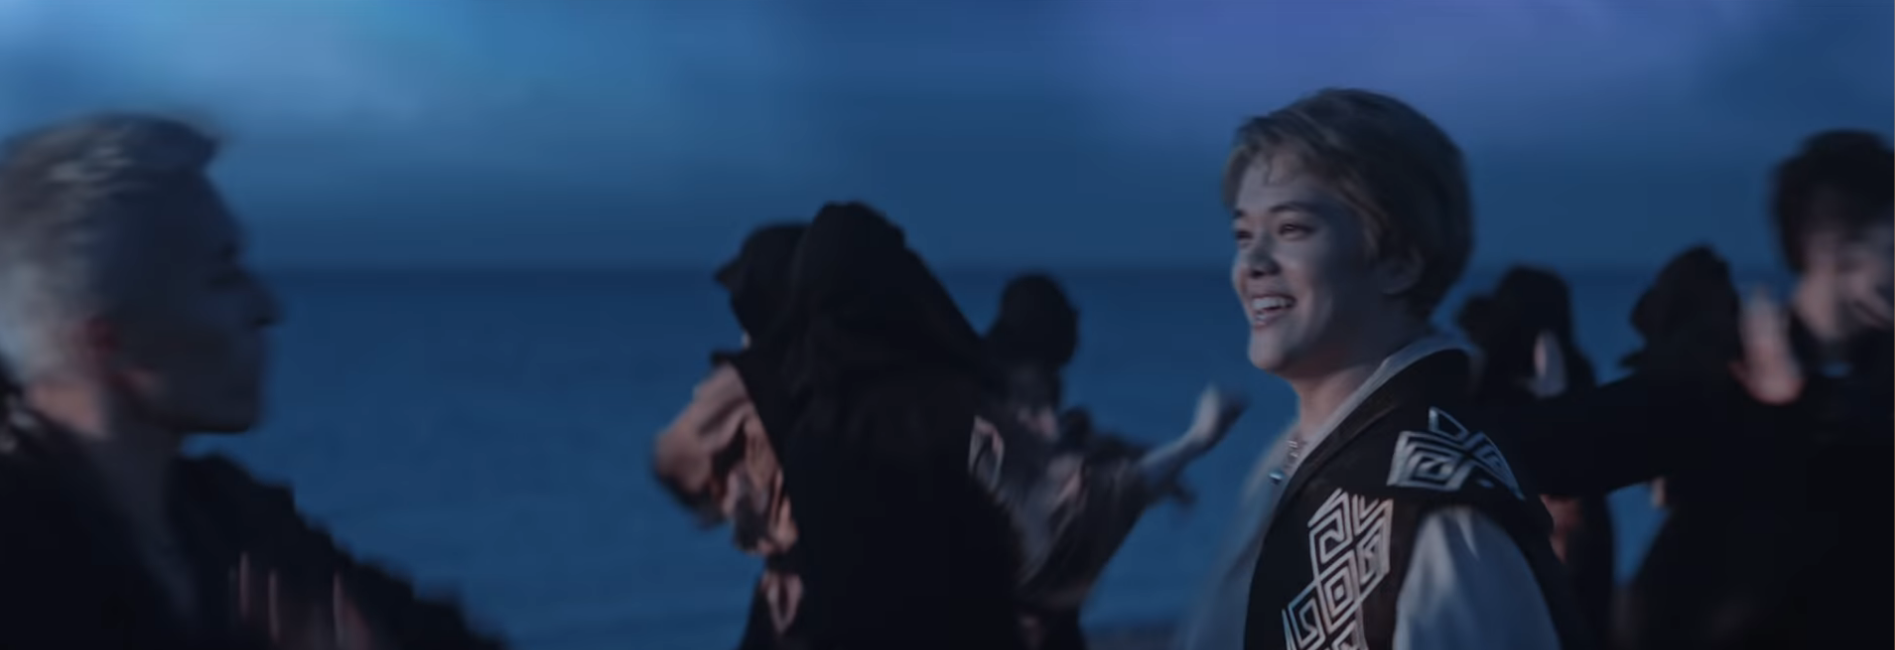 Image of Ninety One and backup dancers at night on the beach, with ZaQ at left, Ace in the center (looking to his left and smiling), and Bala at right